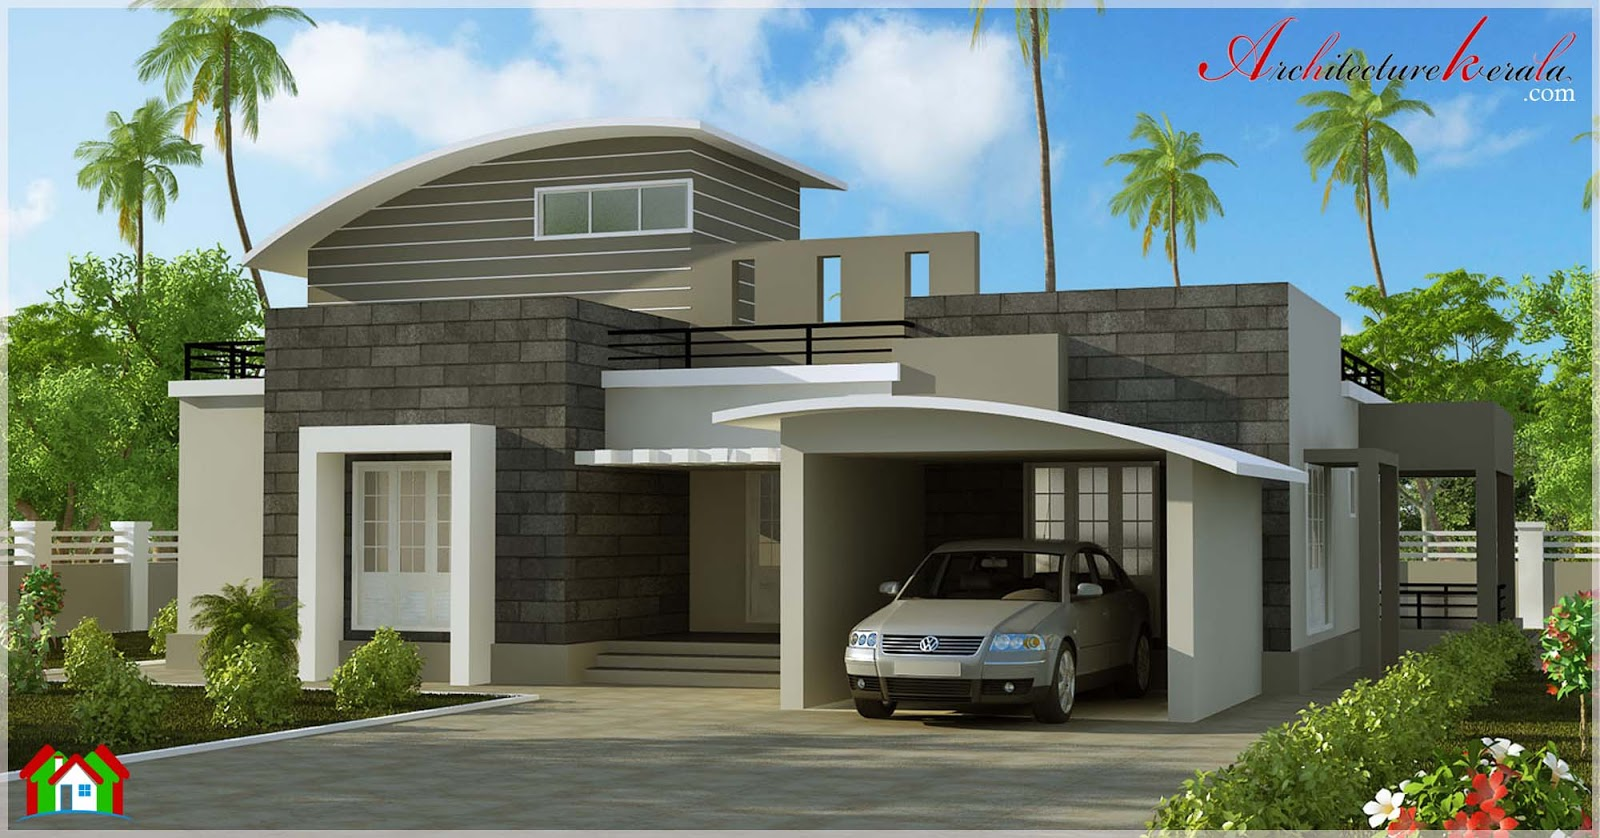 Contemporary style villa elevation architecture kerala for Home designs kerala style